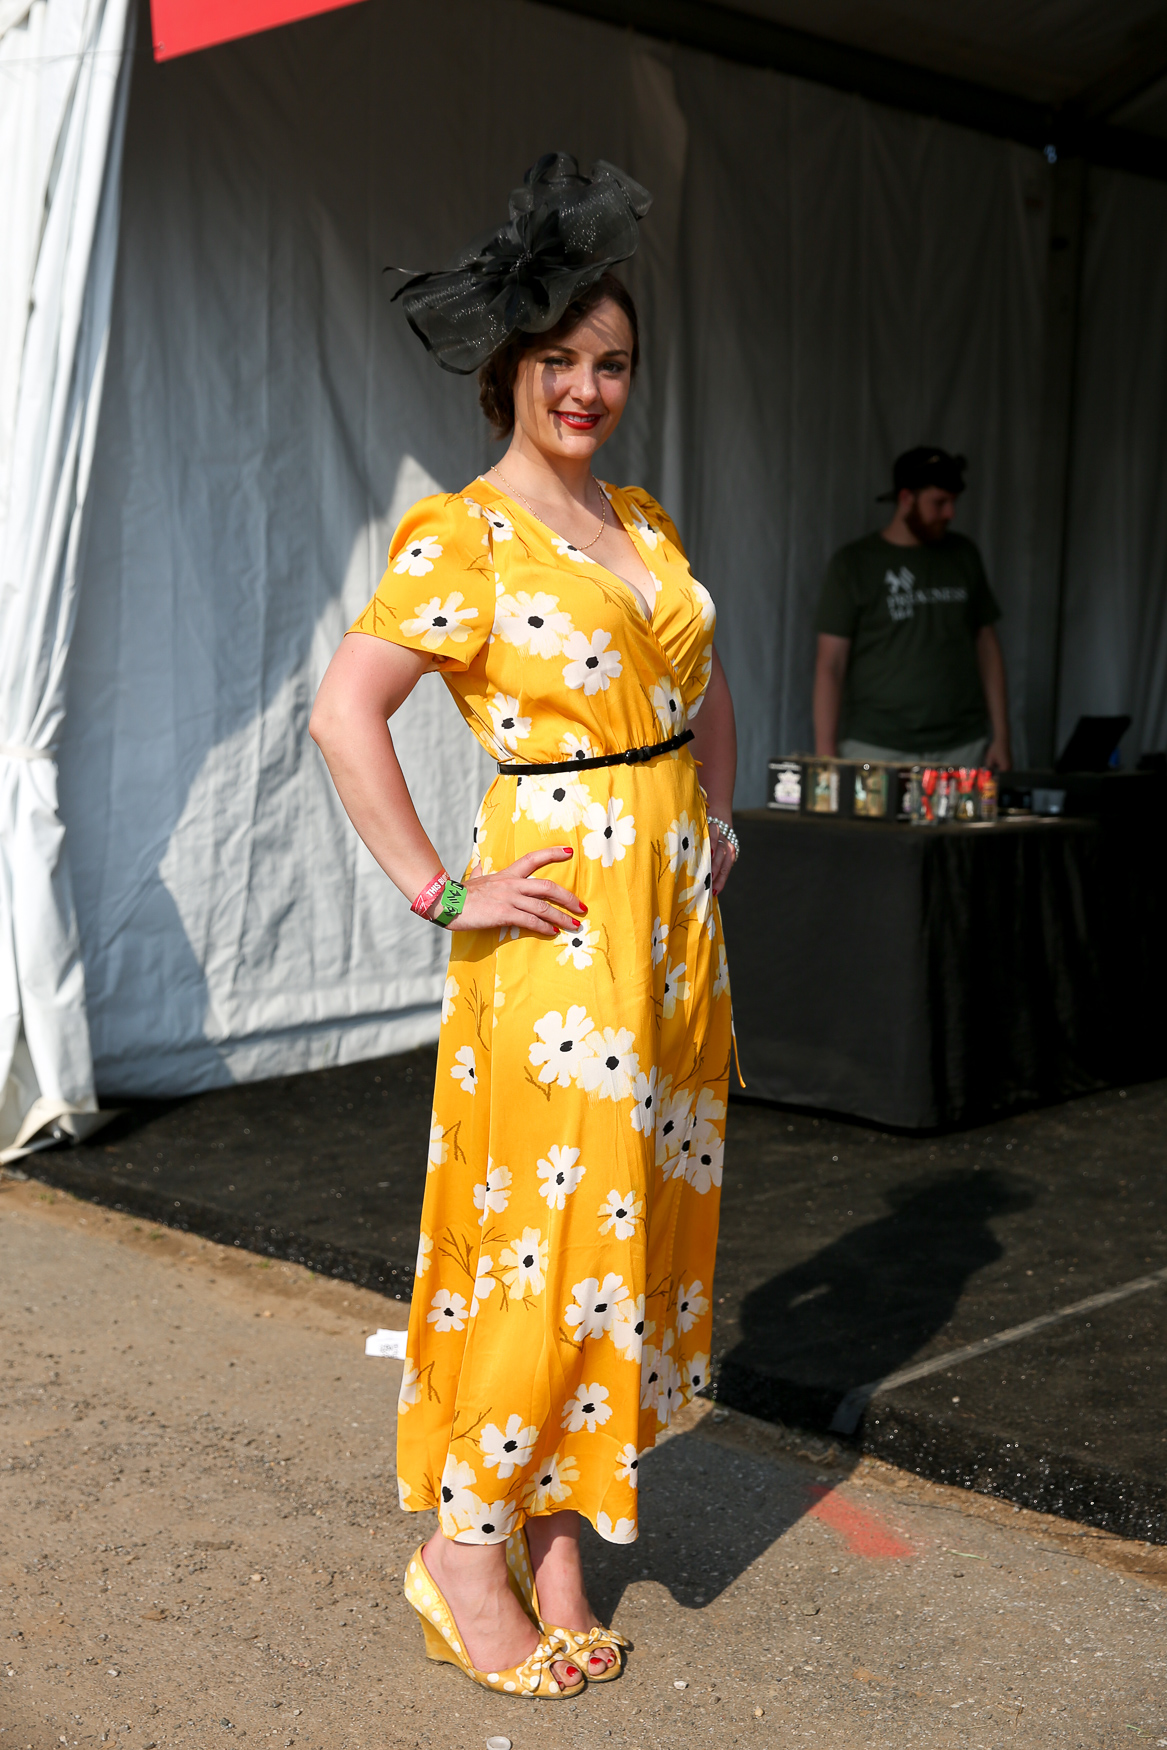 To be fair, official cocktail of Preakness is the Black Eyed Susan, a yellow flower. This is a sweet take on the theme.{ }(Amanda Andrade-Rhoades/DC Refined)